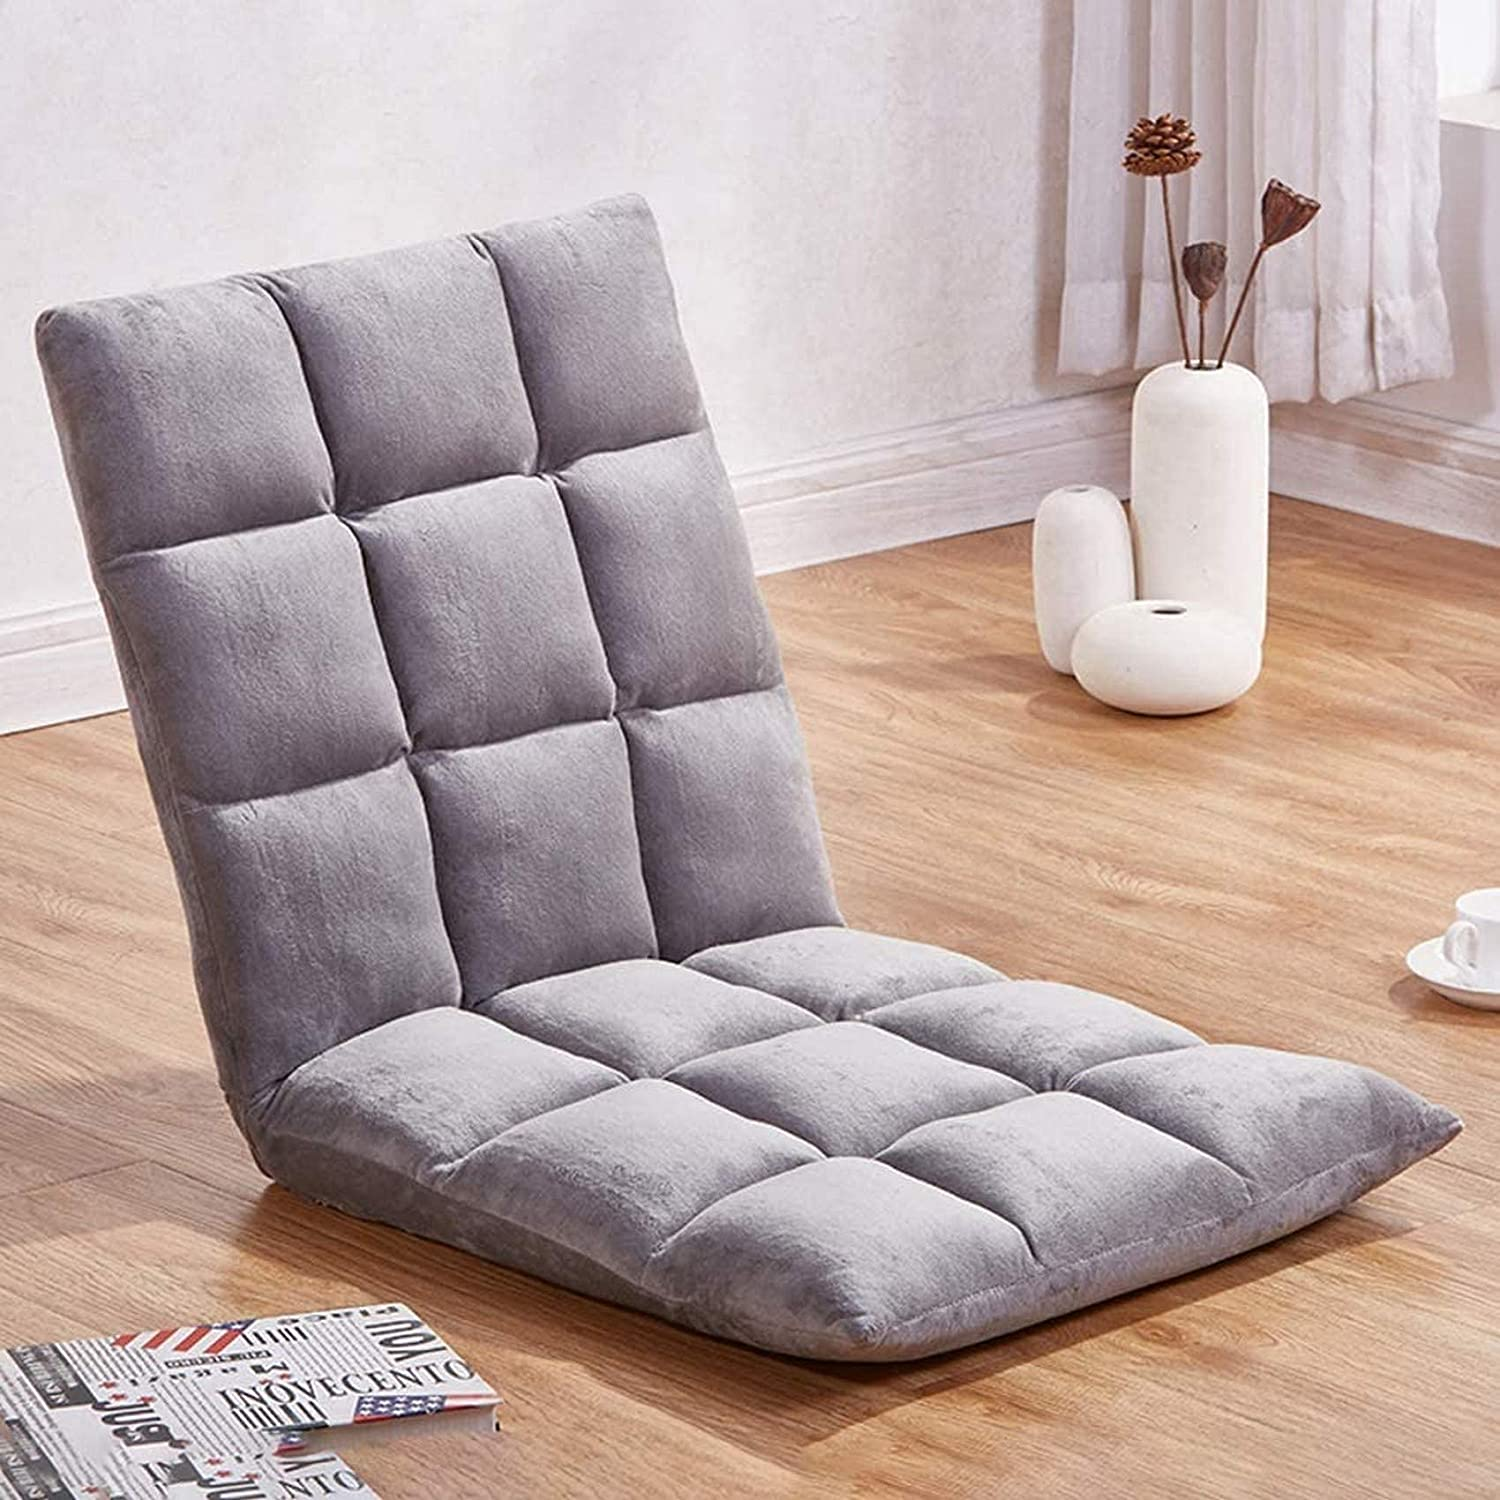 erddcbb Adjustable Now on sale Floor Chair Folding Lazy Sofa Back Credence Suppo with